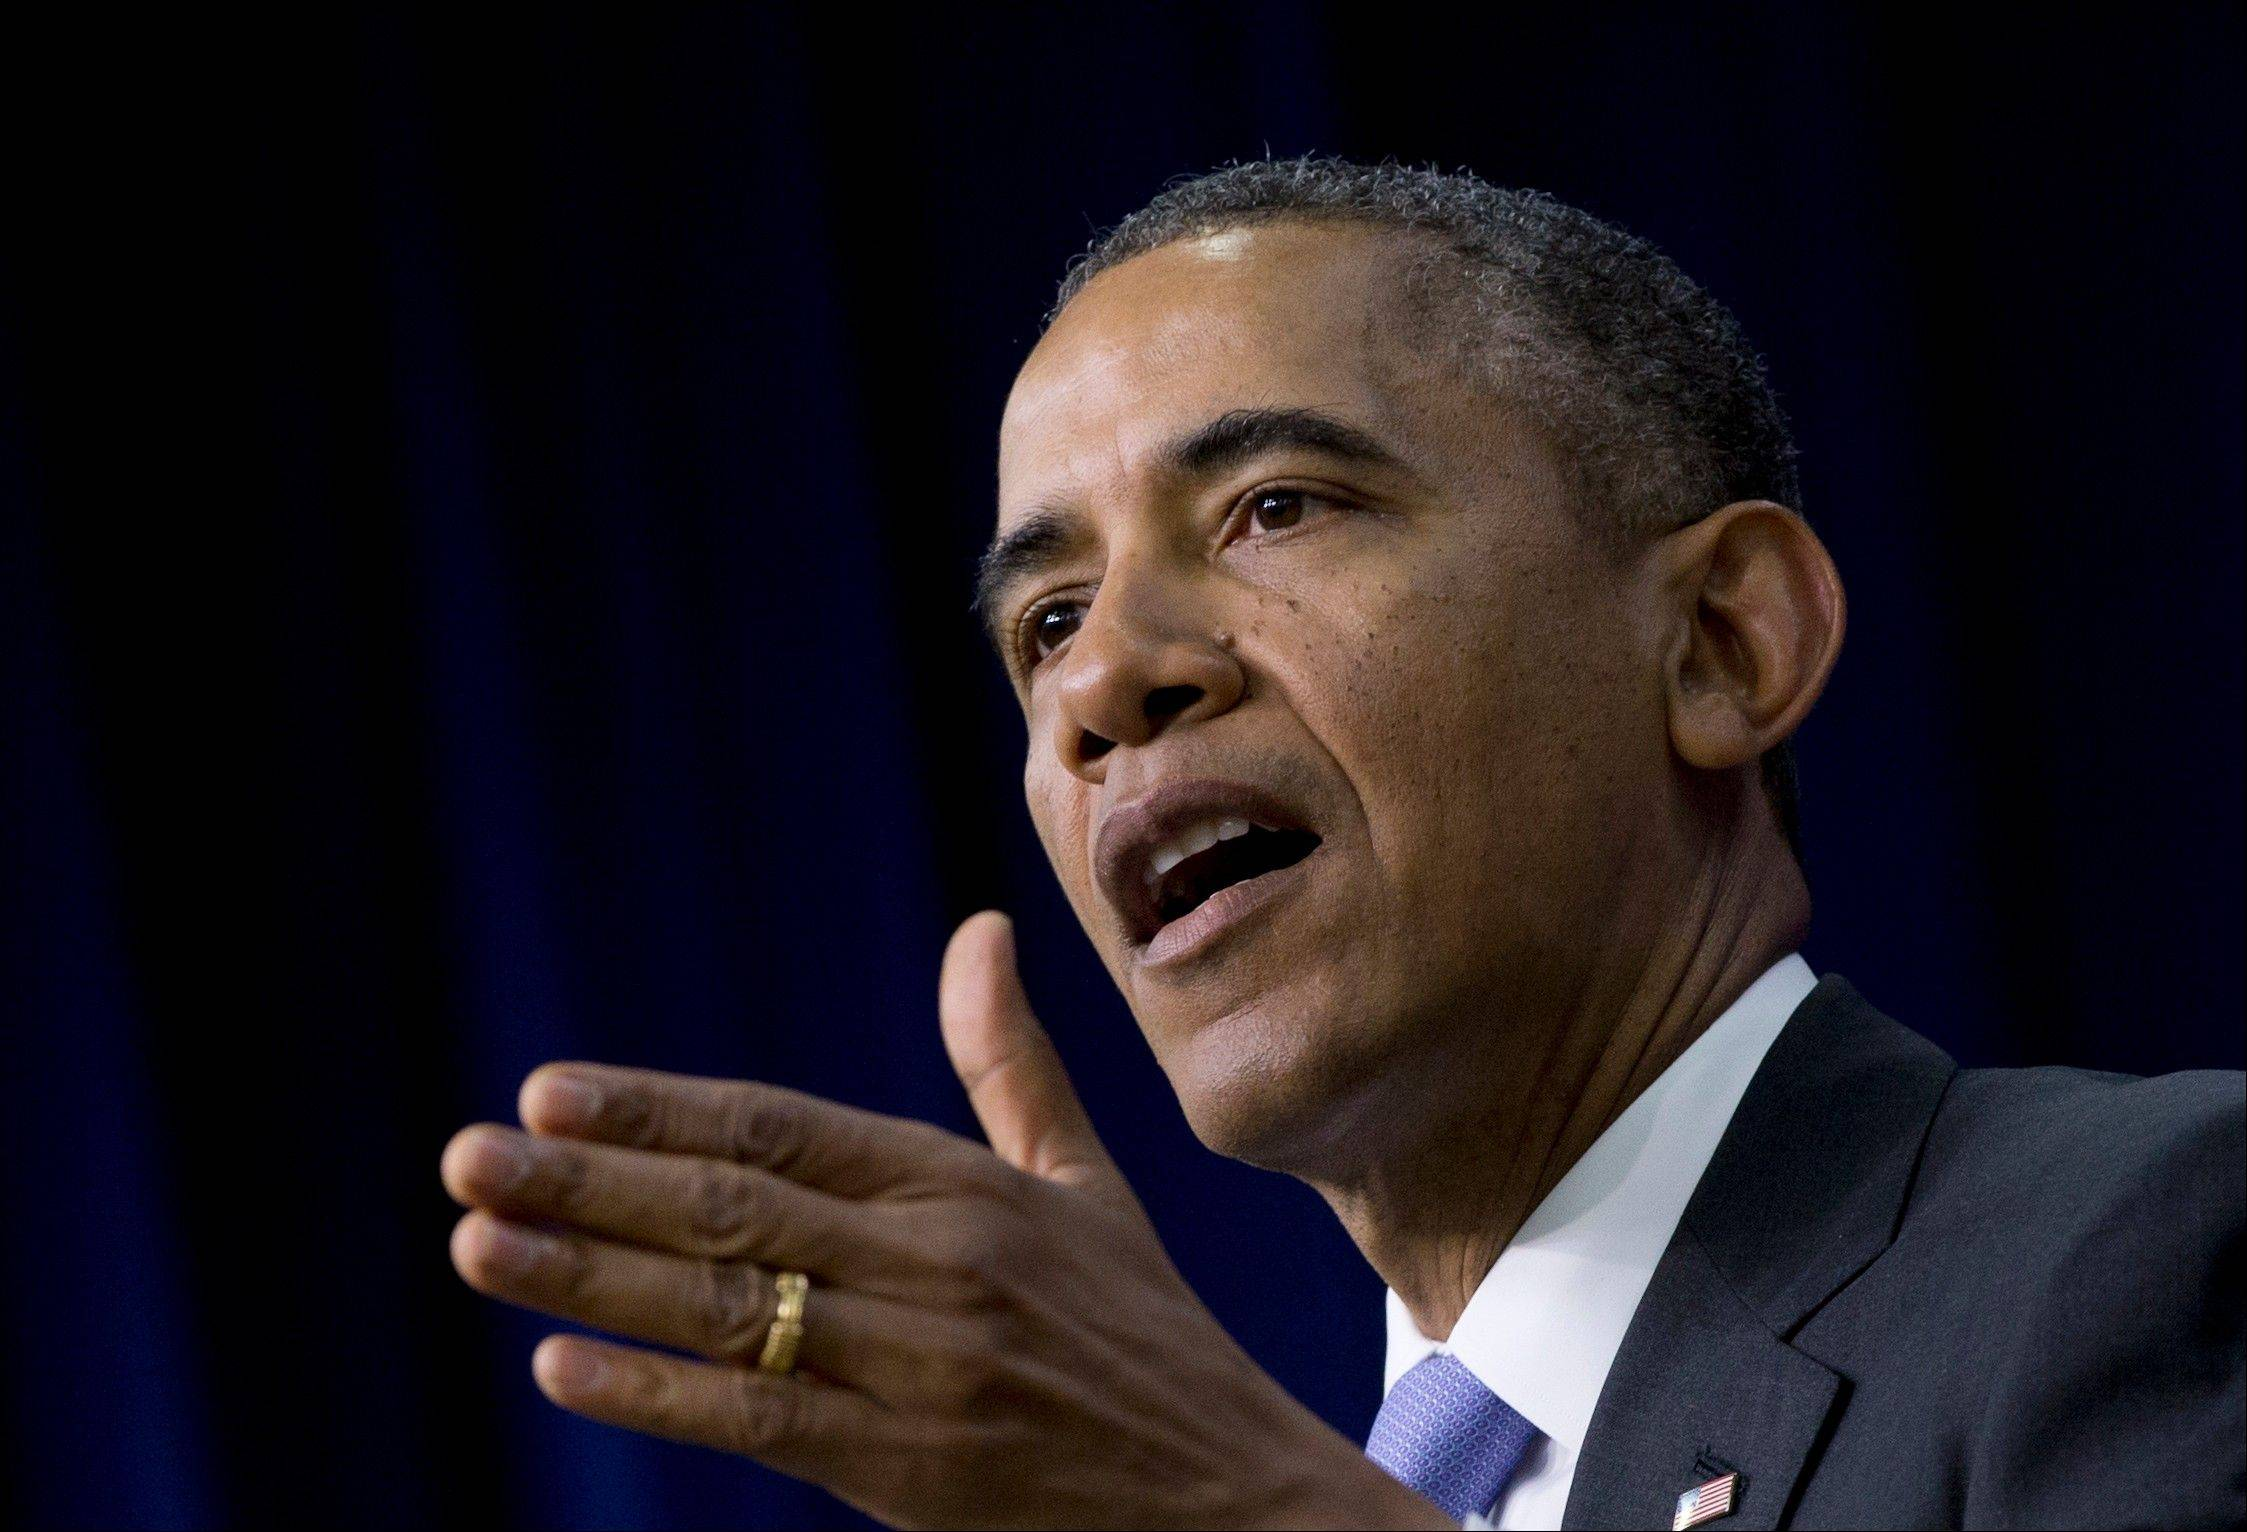 President Barack Obama gestures Thursday as he speaks during an Expanding College Opportunity event. A judge's emails held Obama in partrticularly low regard.